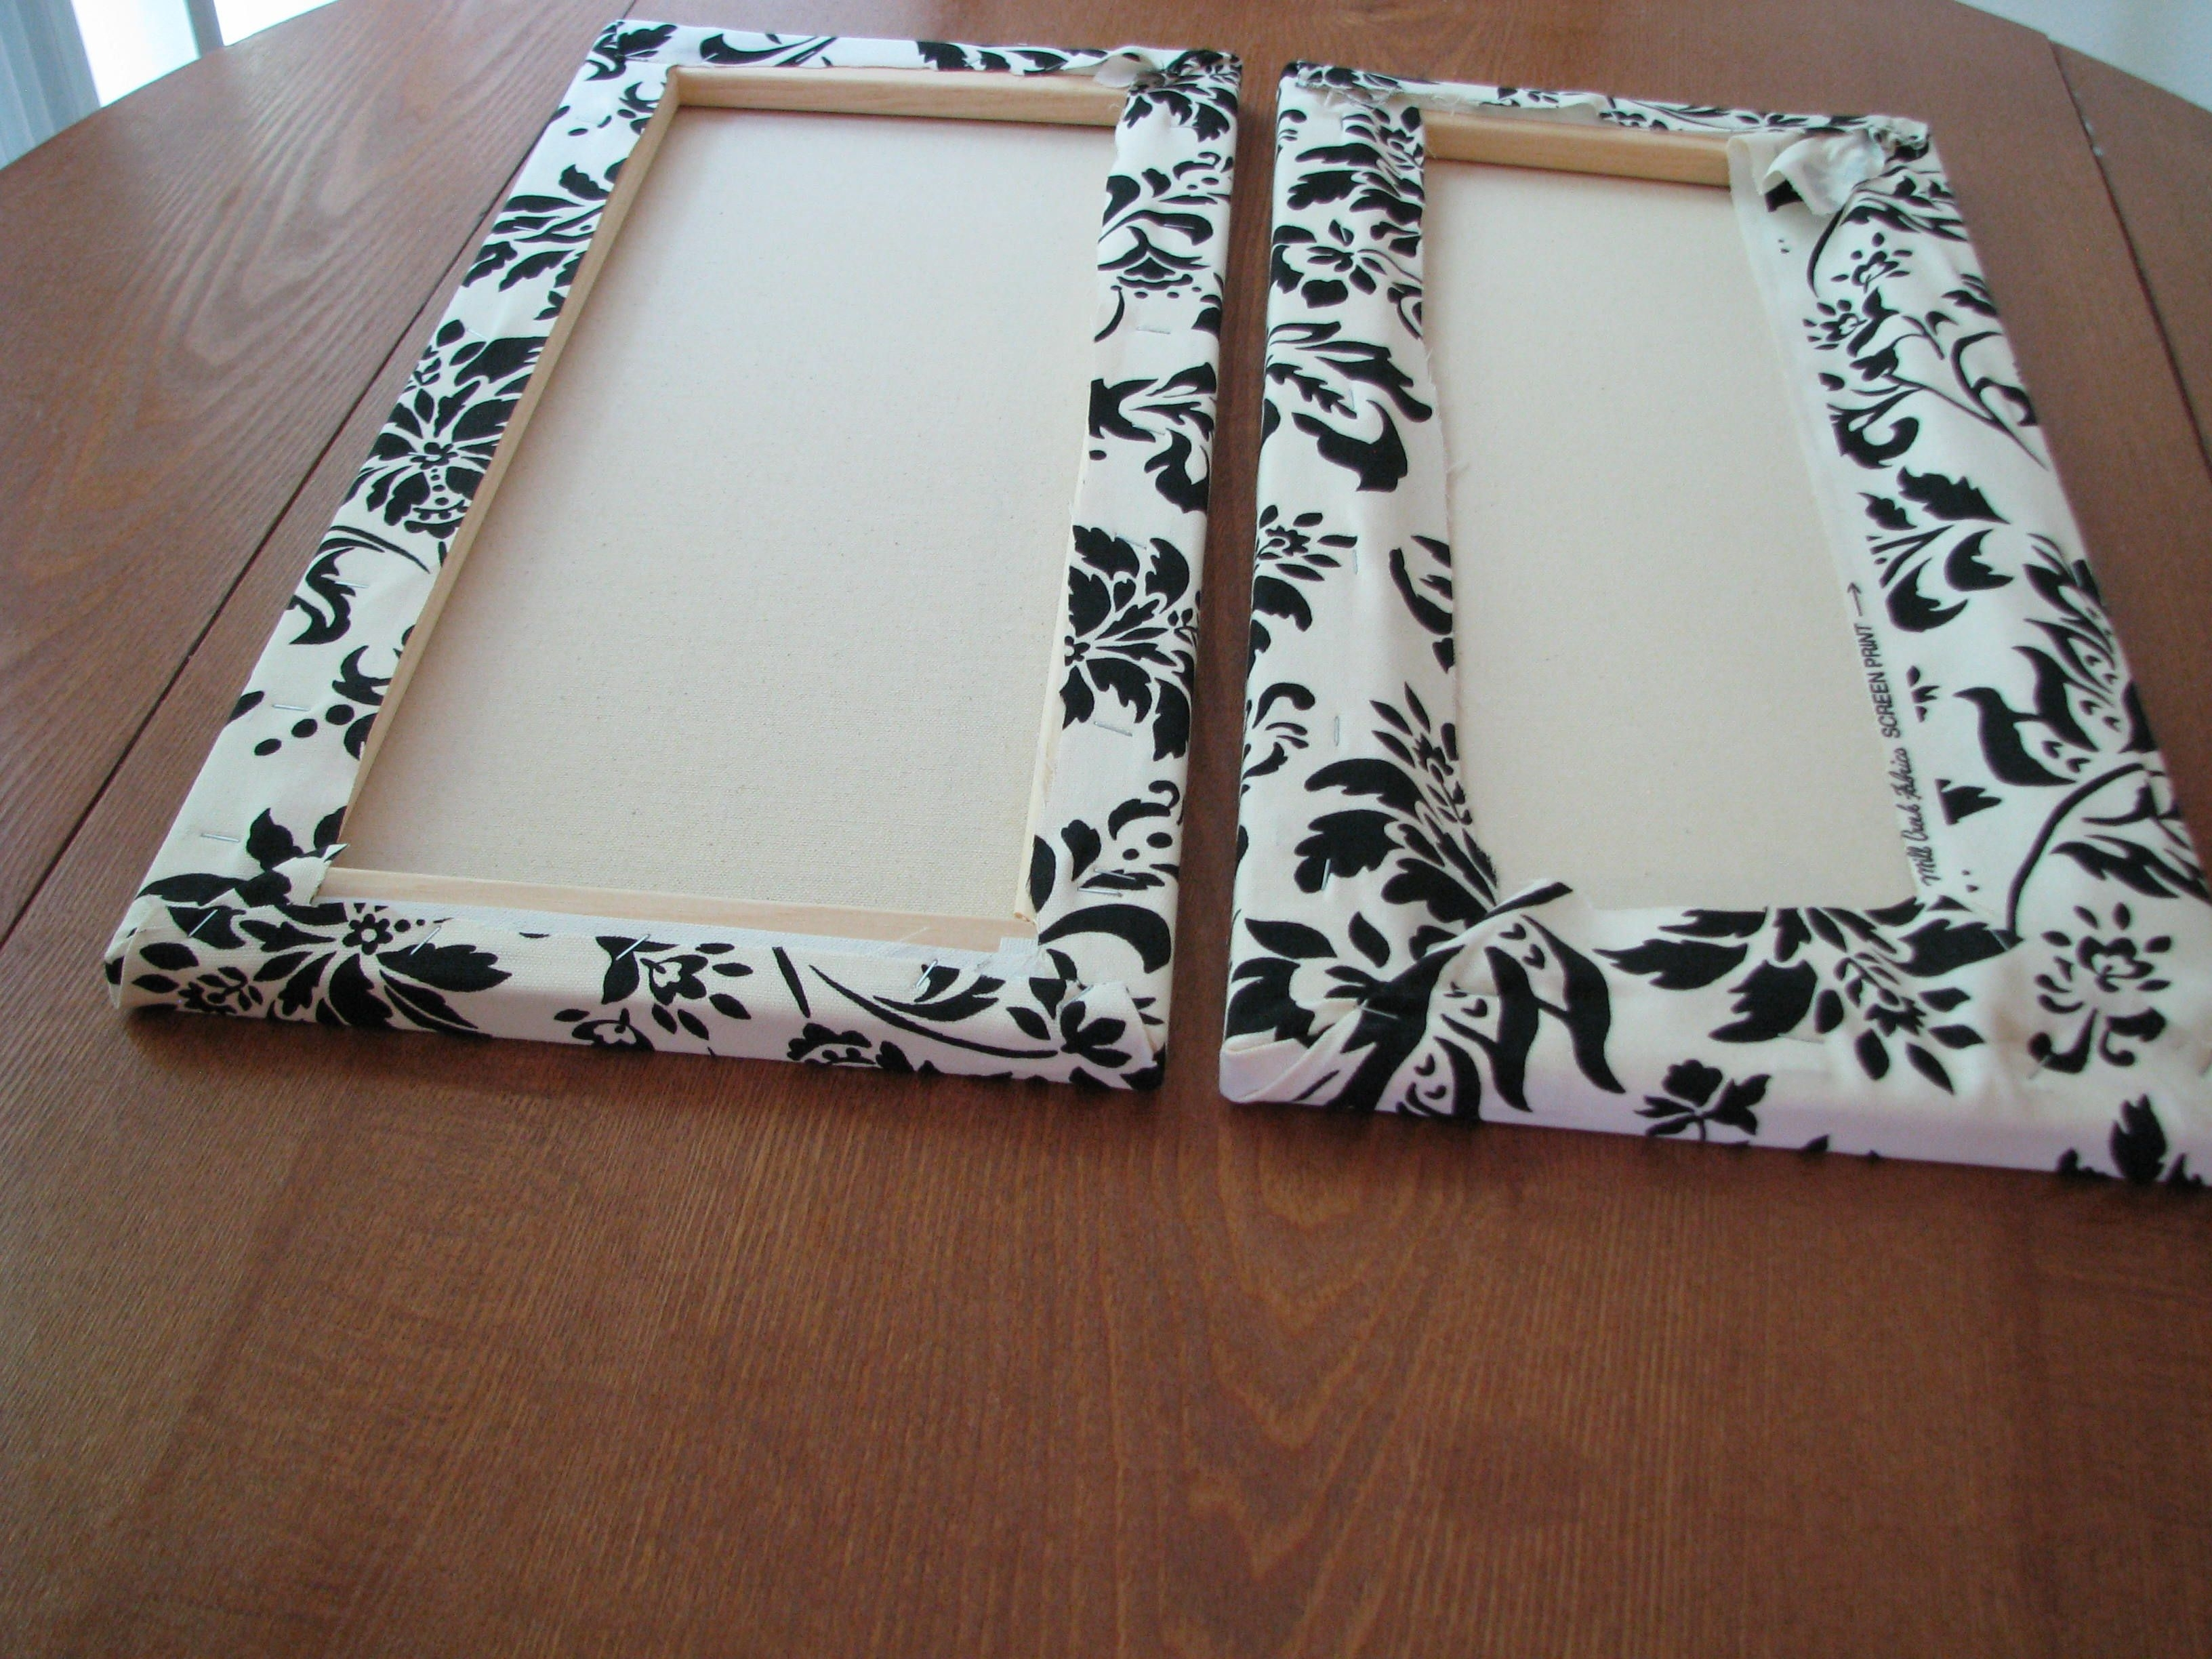 Make Your Own Canvas Wall Hangings | Diy Wall Art, Cork Boards And Pertaining To Newest Cheap Fabric Wall Art (View 11 of 15)